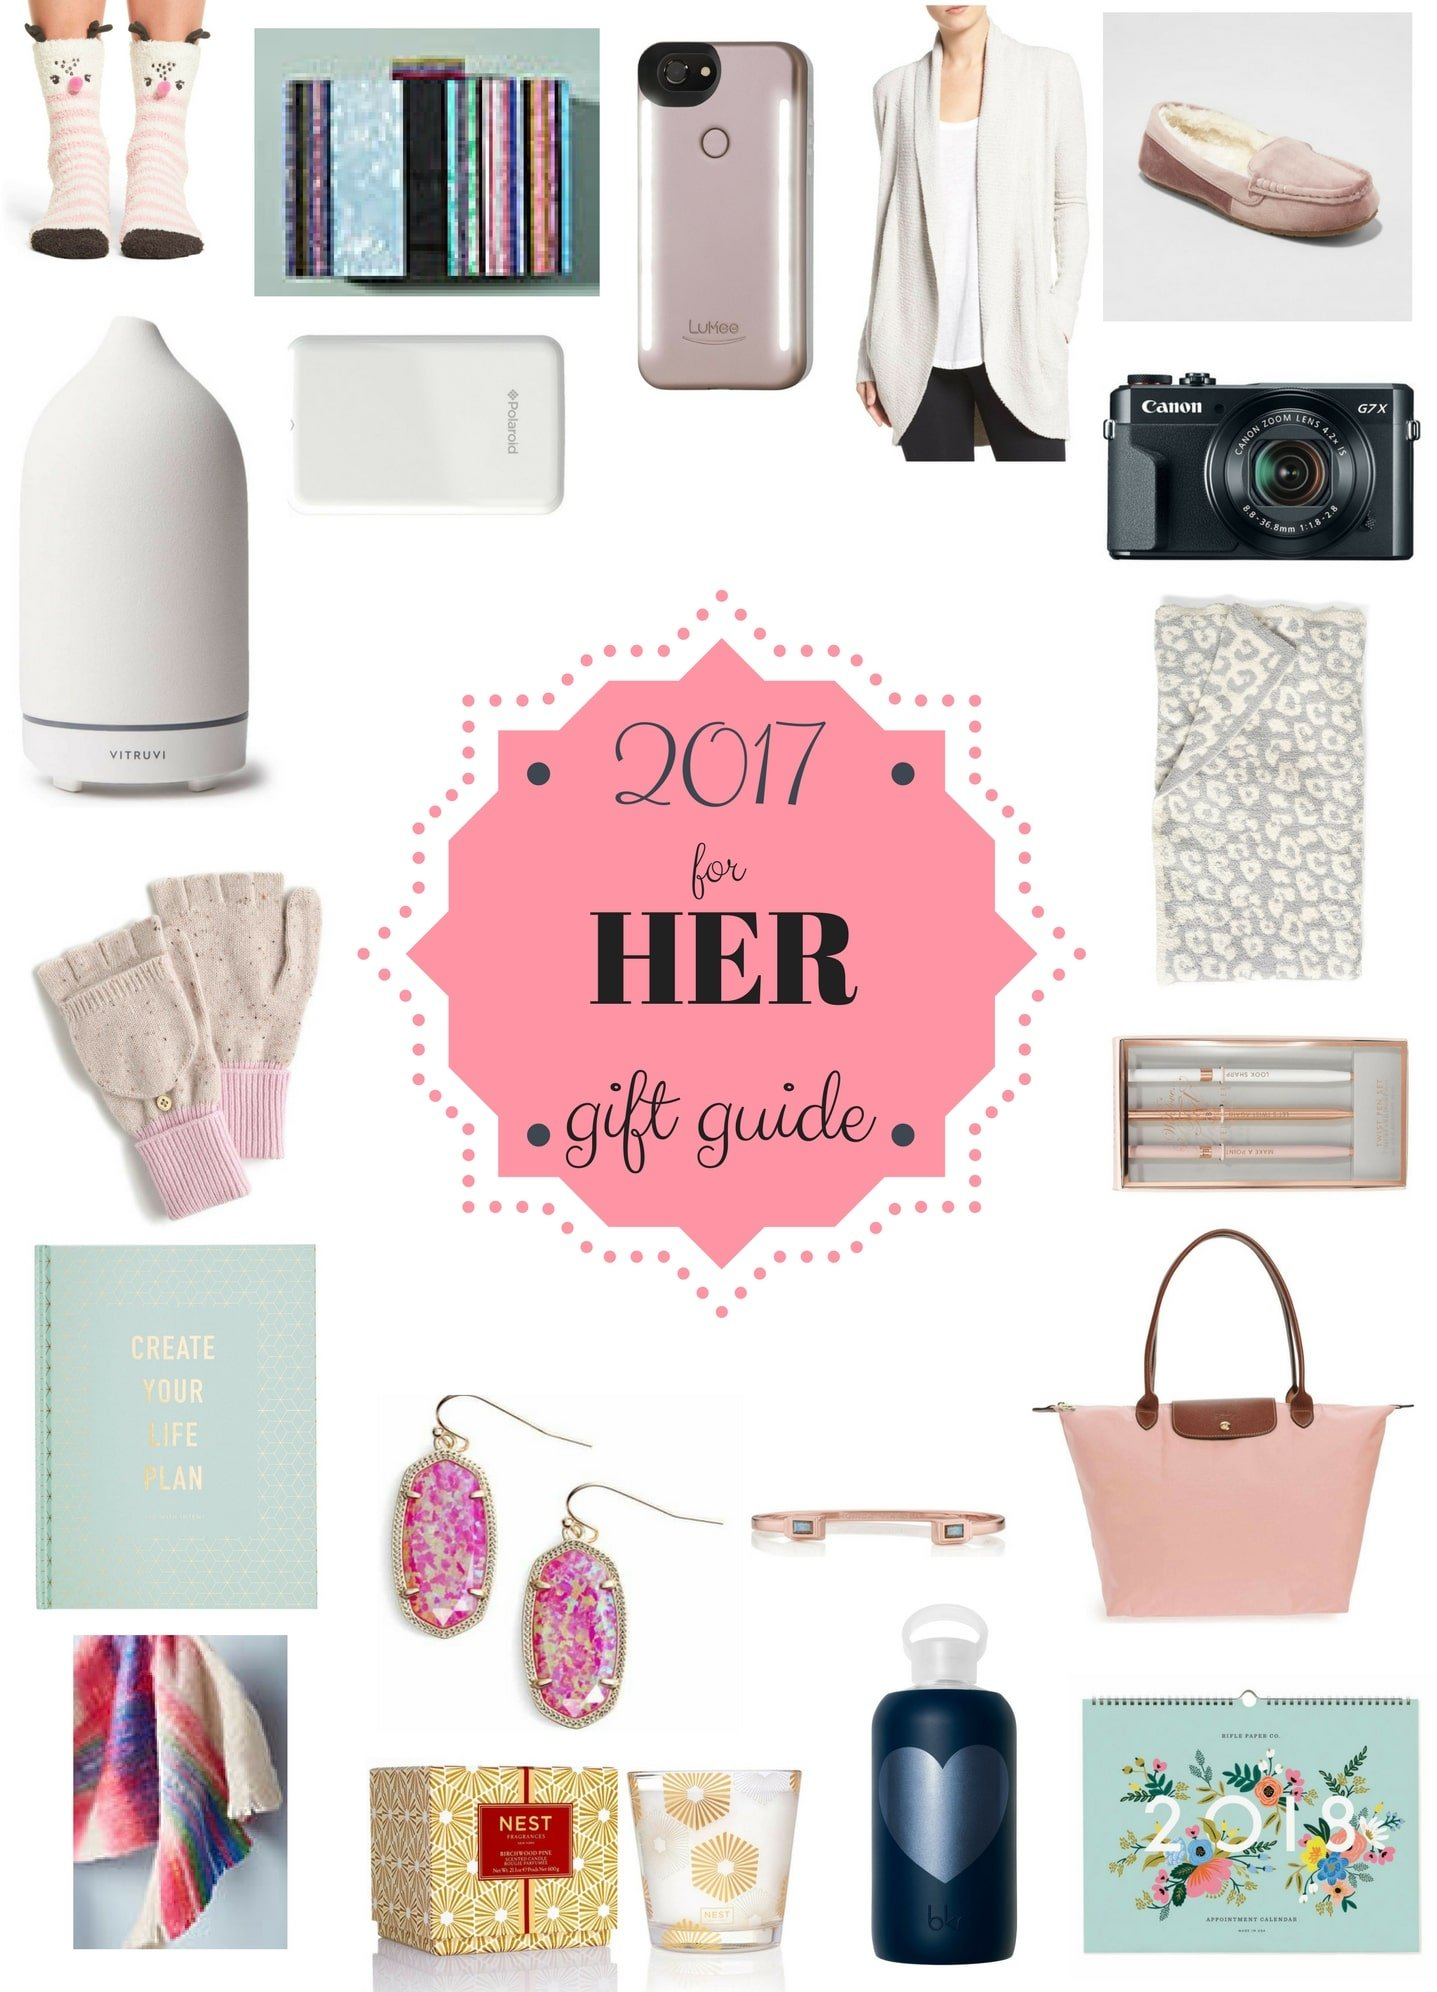 holiday gift guide for HER I howsweeteats.com #giftguide #christmas #holiday